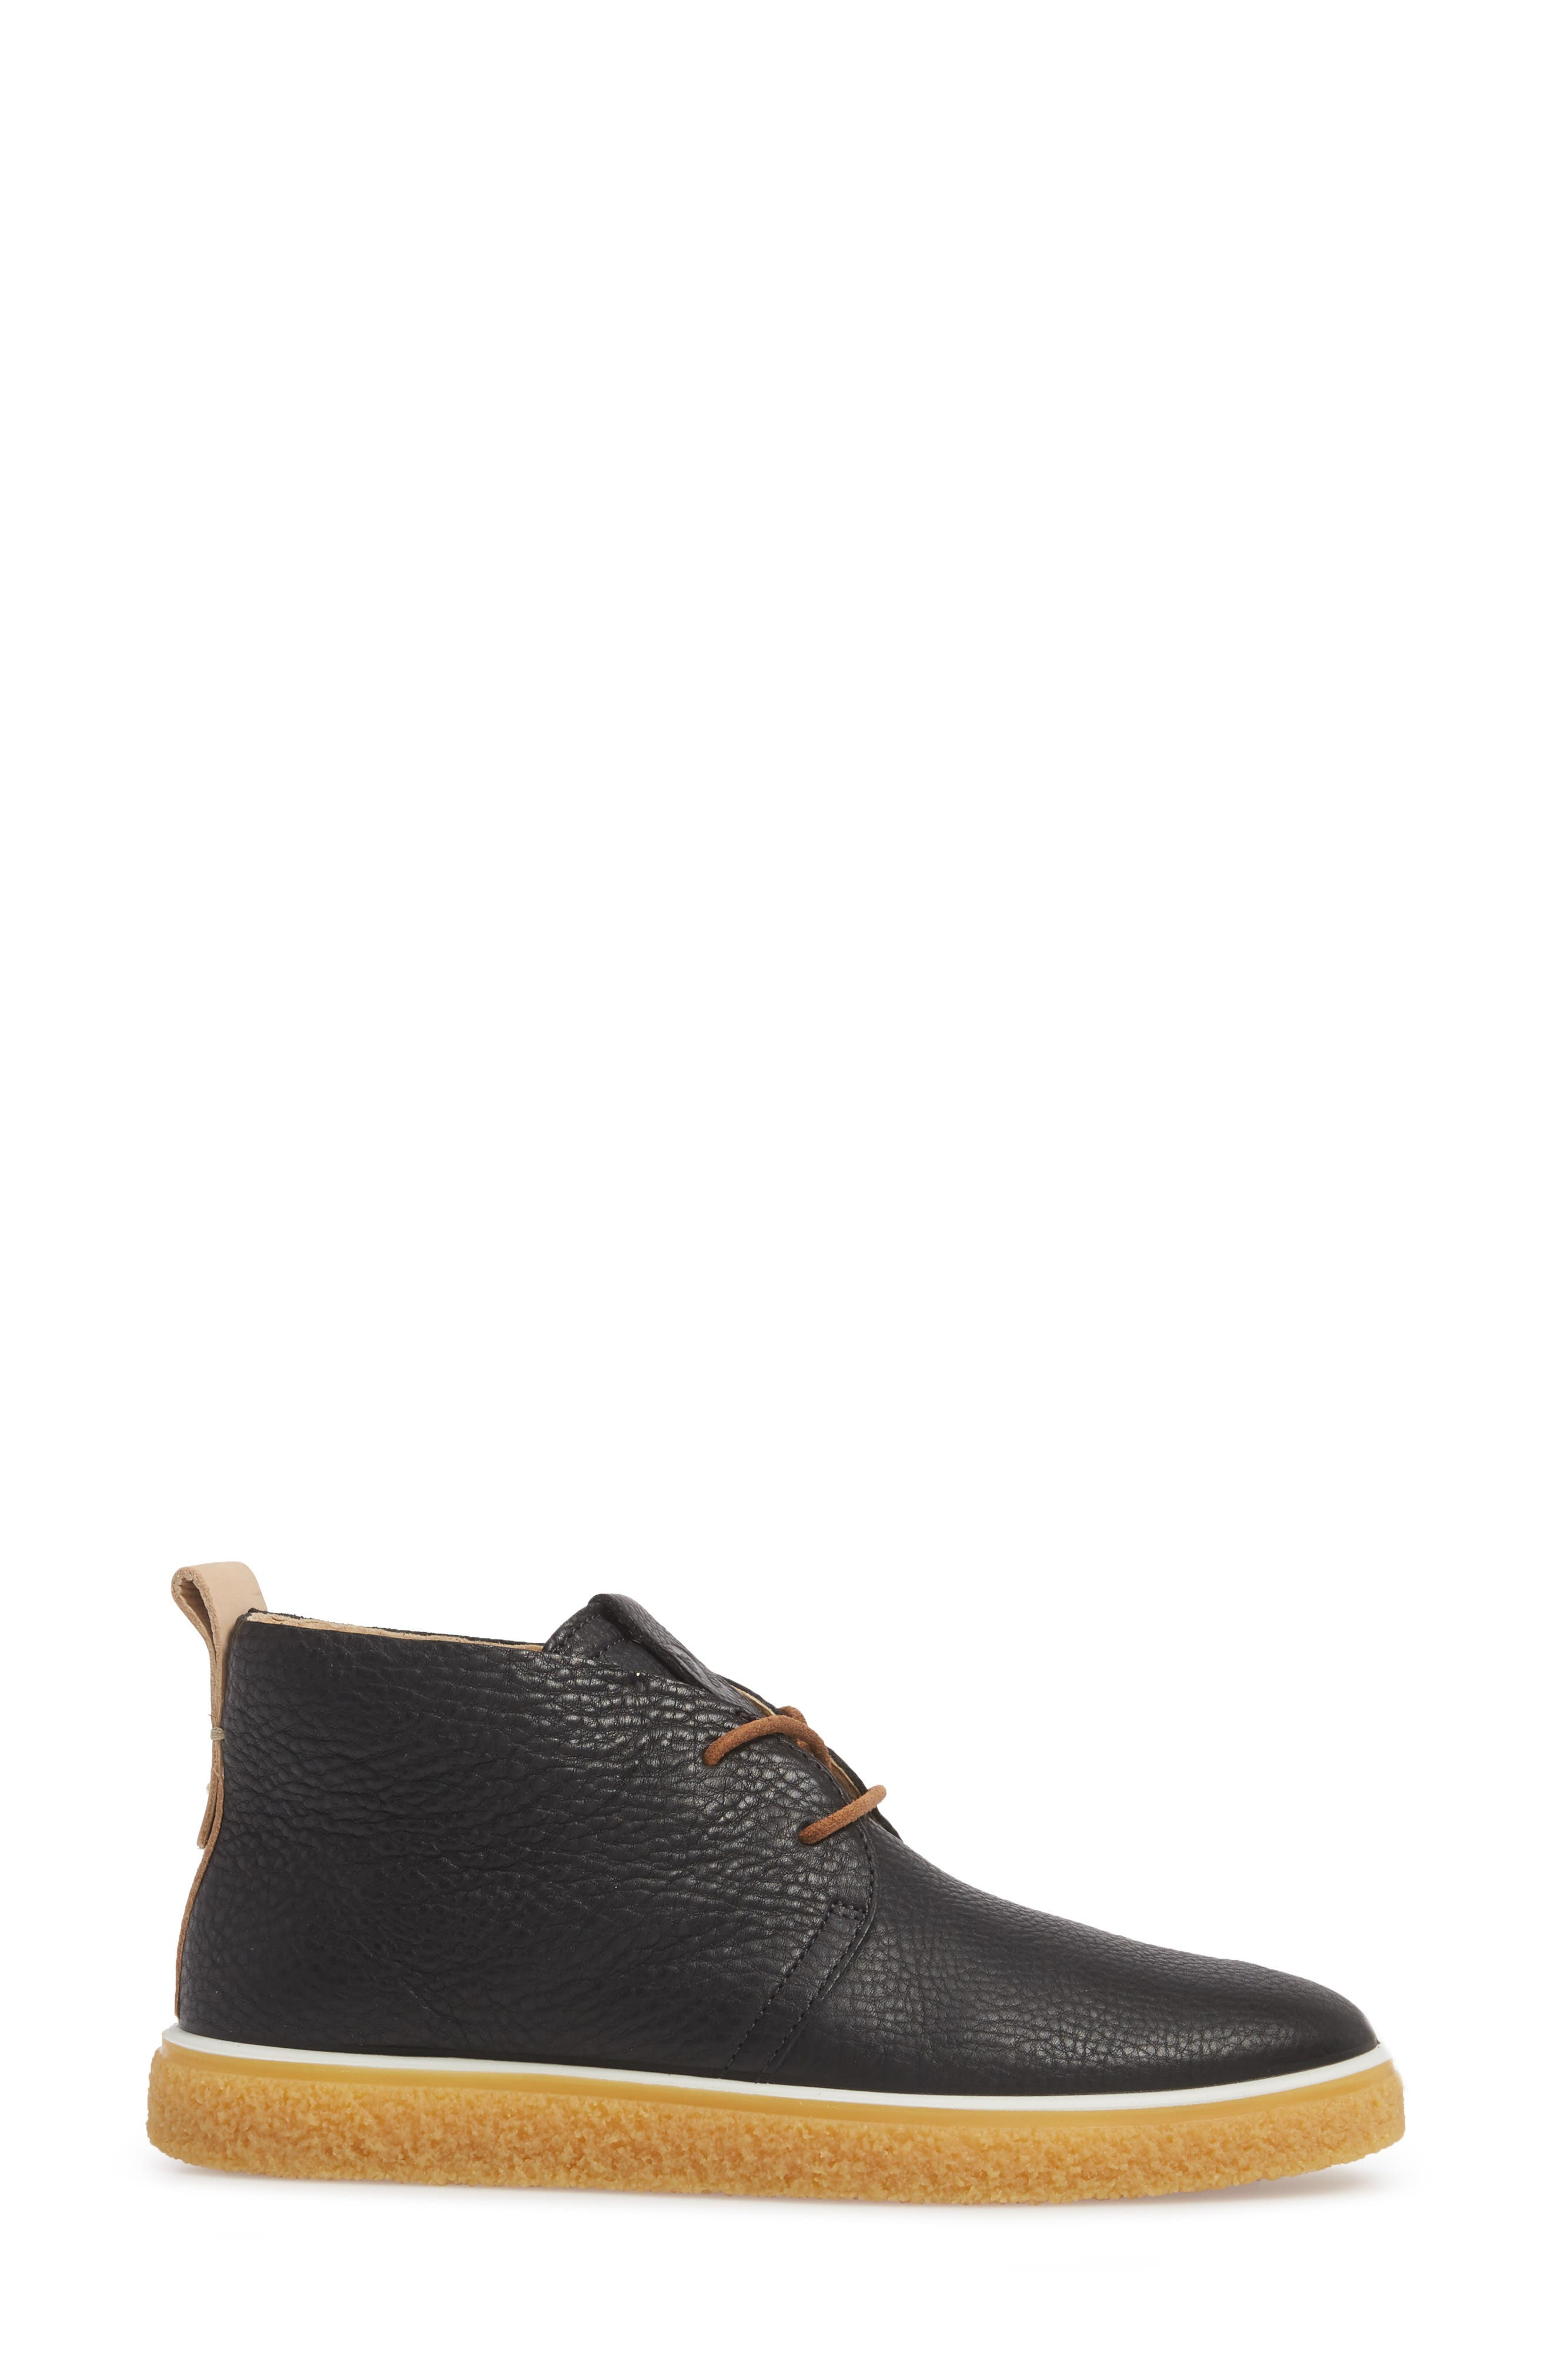 Crepetray Chukka Boot,                             Alternate thumbnail 3, color,                             BLACK POWDER LEATHER